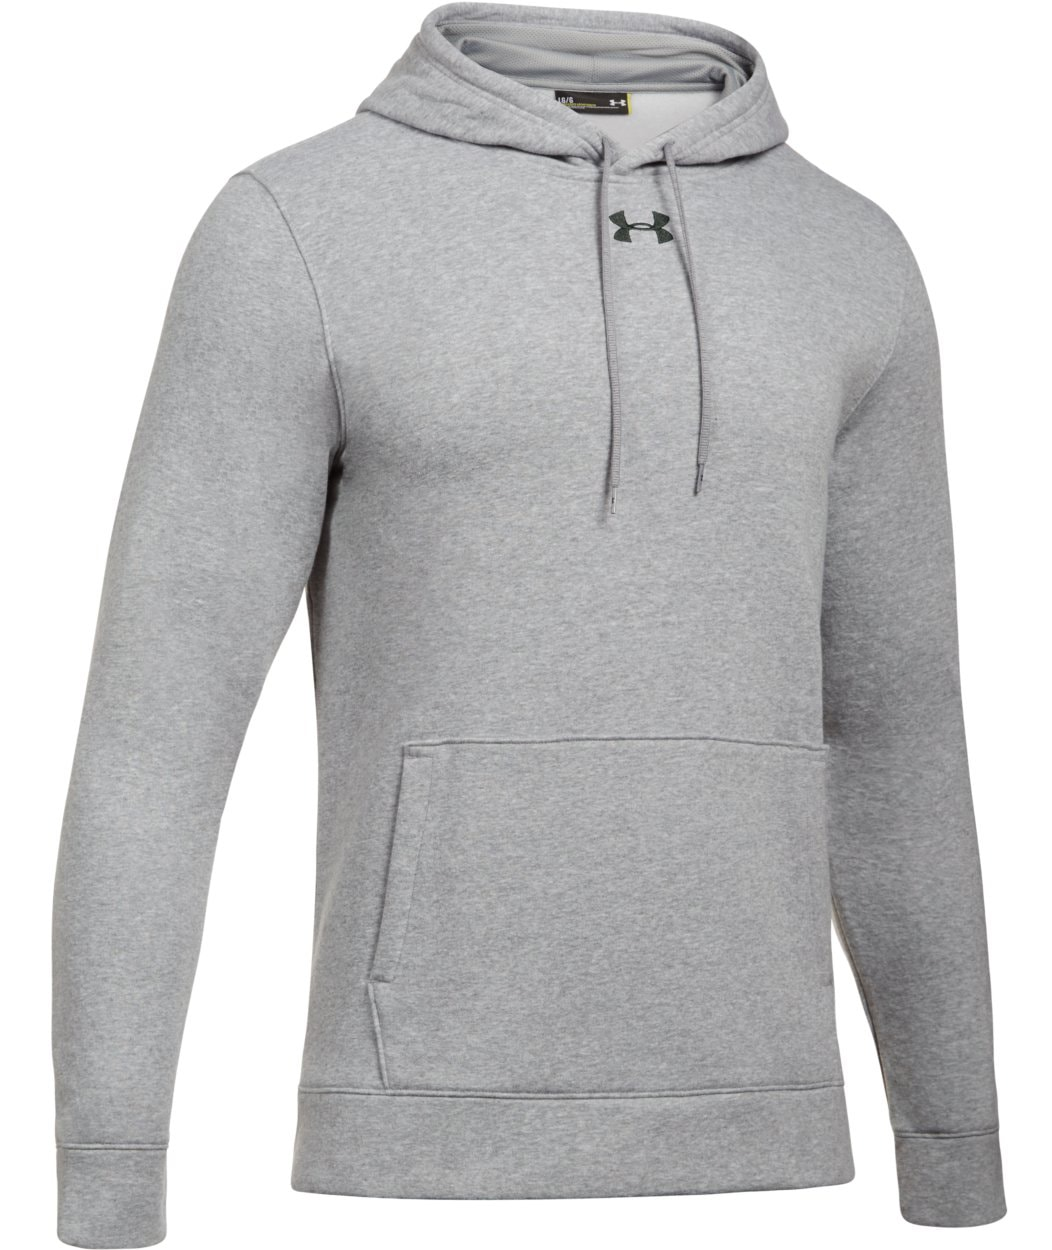 Picture of UNDER ARMOUR Hustle Hoodie